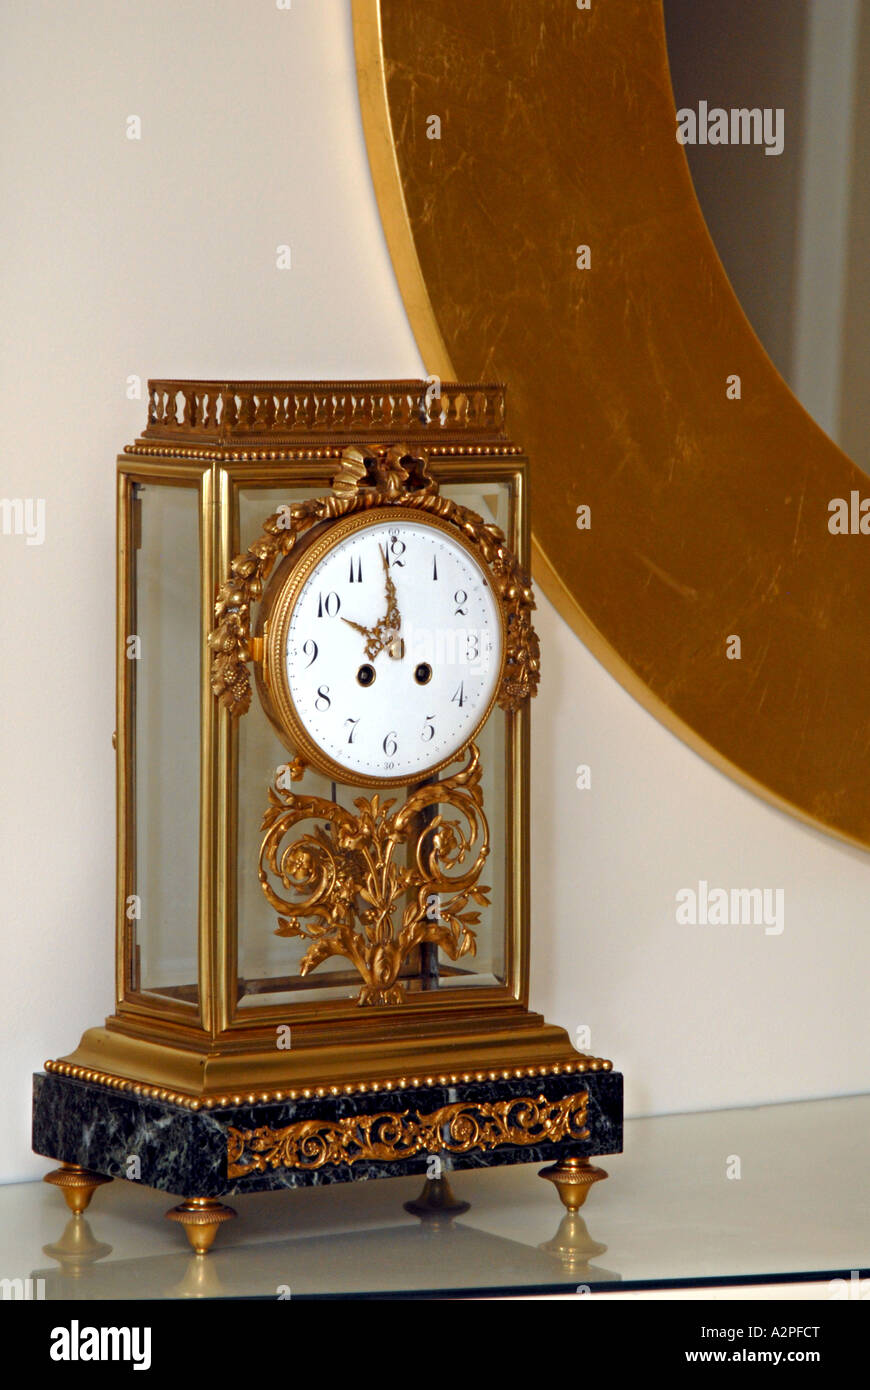 Antique 1890 s French Regulator clock on shelf gold bordered mirror in background - Stock Image